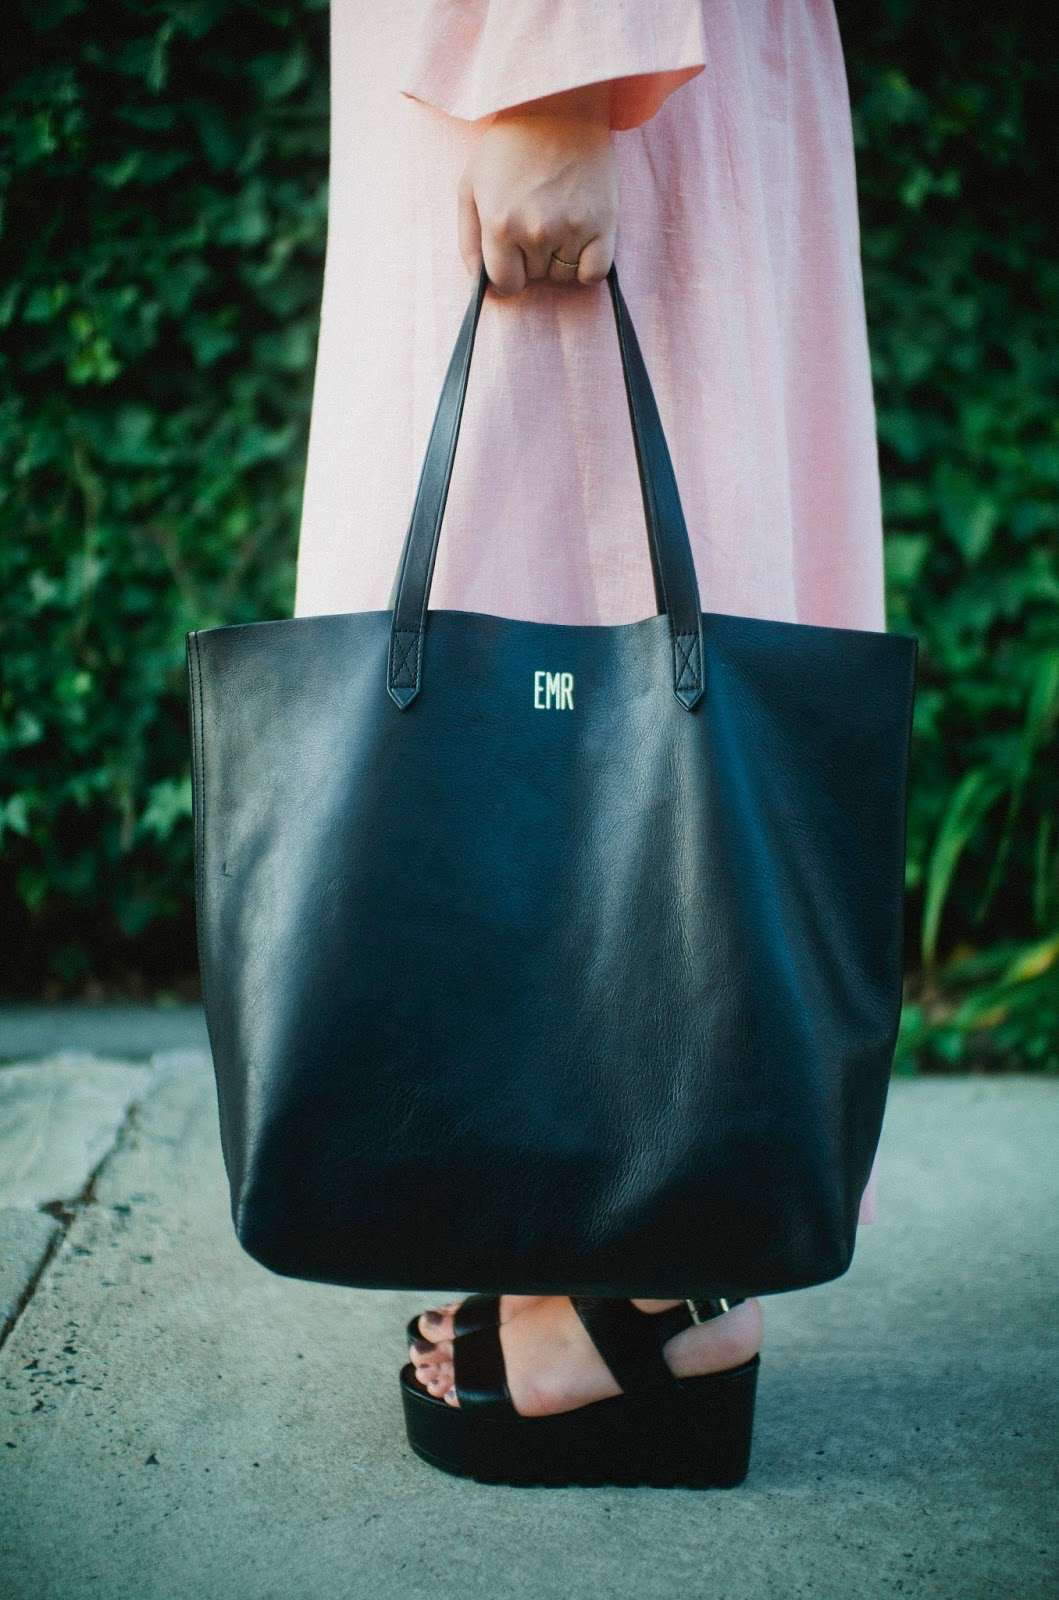 Madewell, Transport, tote, black, street, style